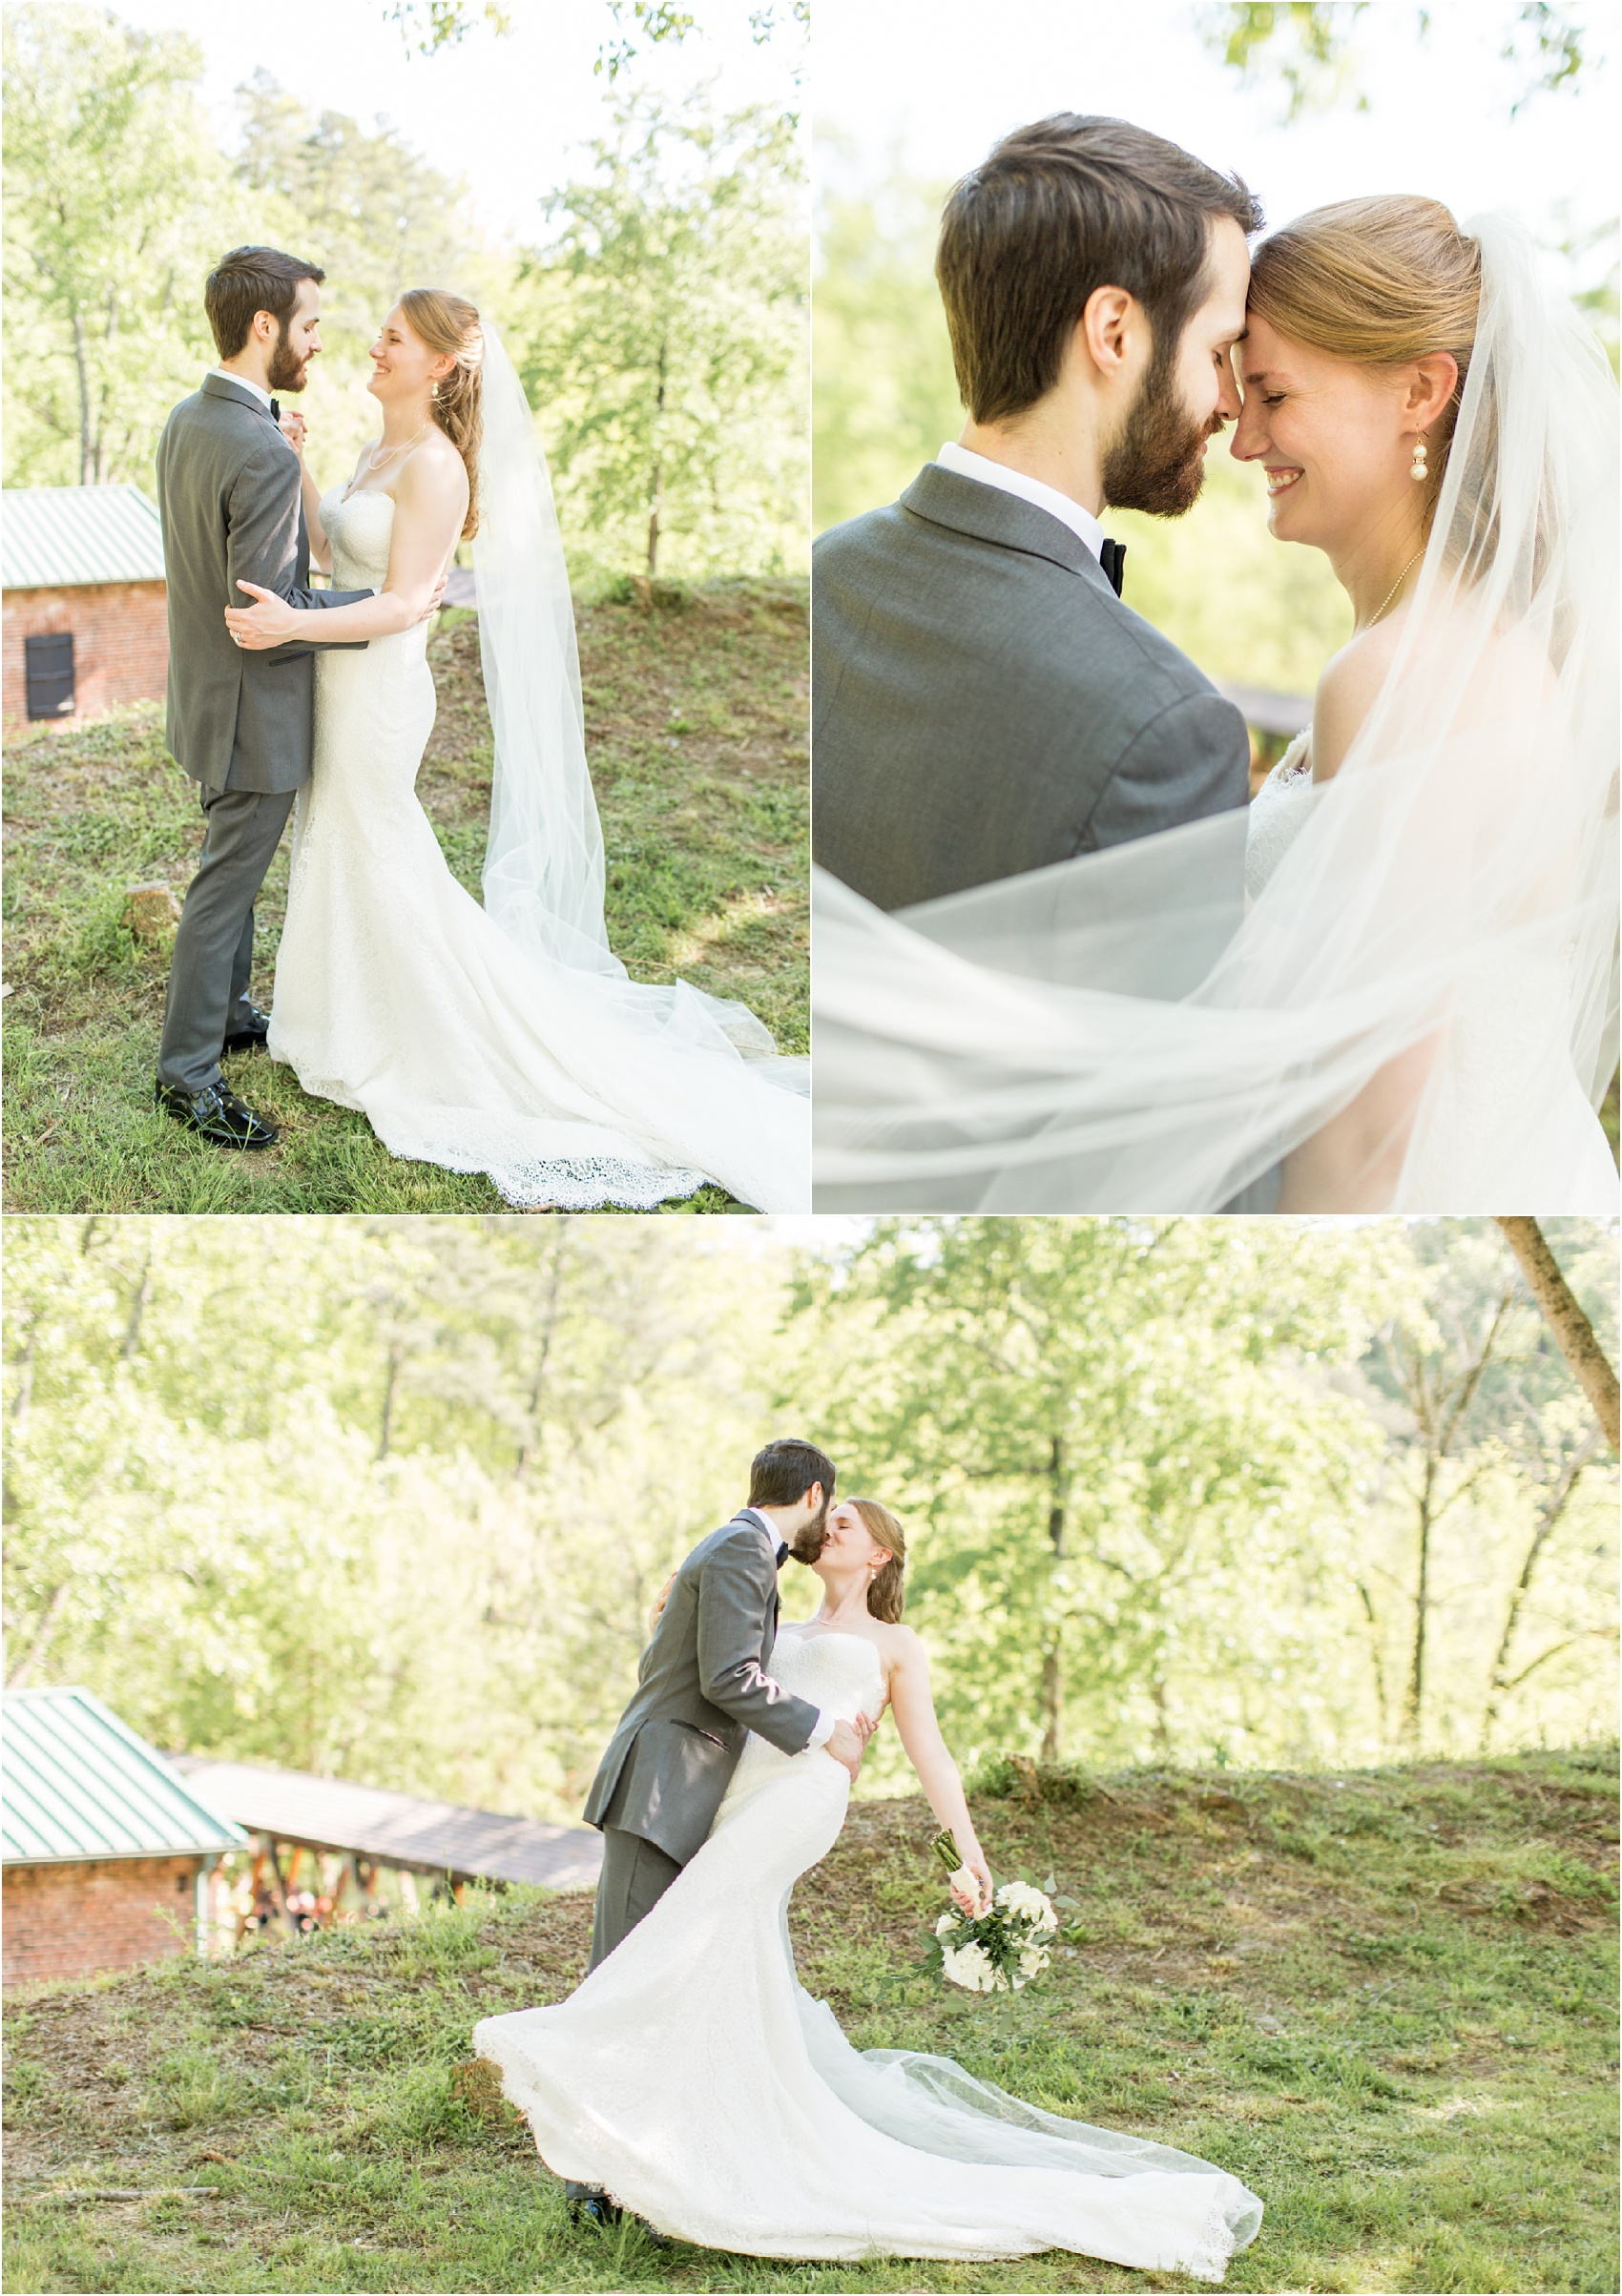 Savannah Eve Photography- Davis Wedding-Blog-69.jpg